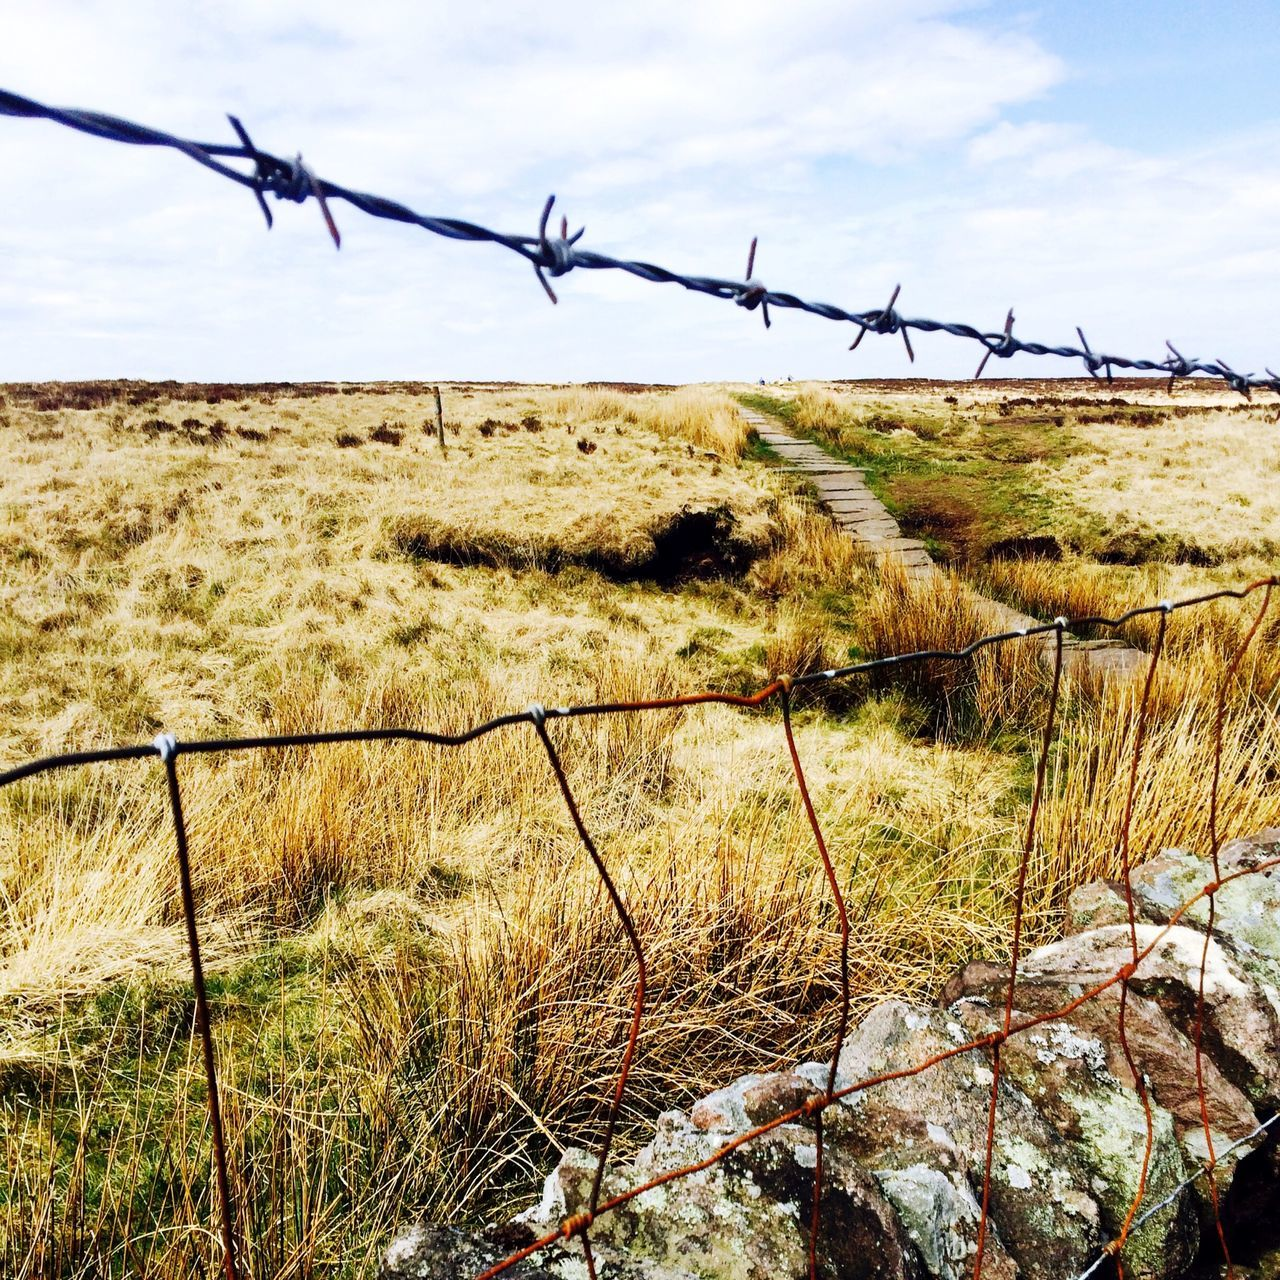 CLOSE-UP OF BARBED WIRE ON FIELD AGAINST SKY